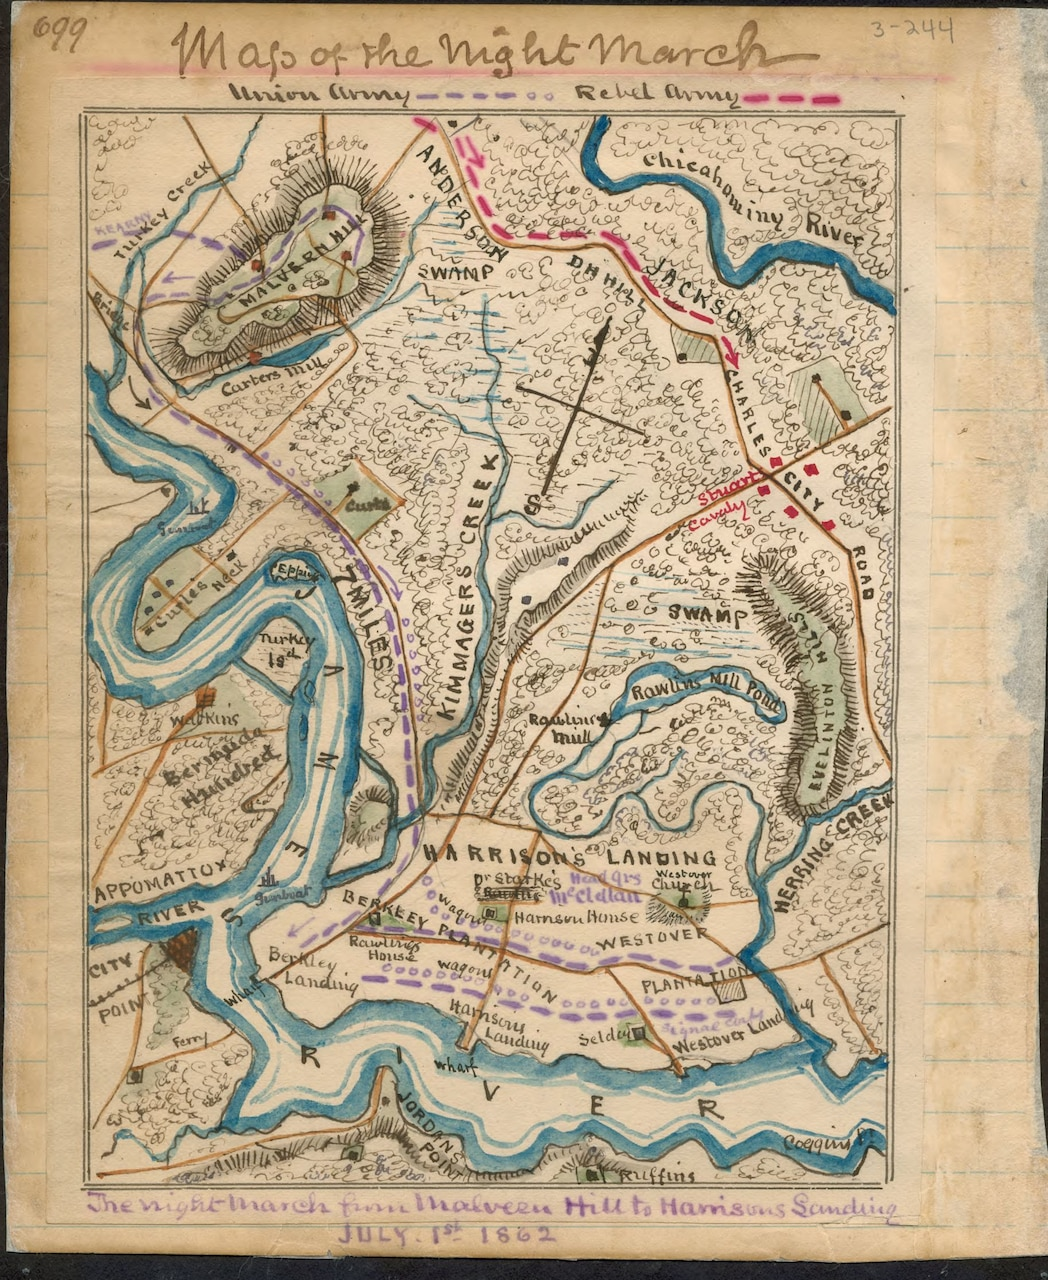 Map of the Richmond, Virginia, area during July 1862